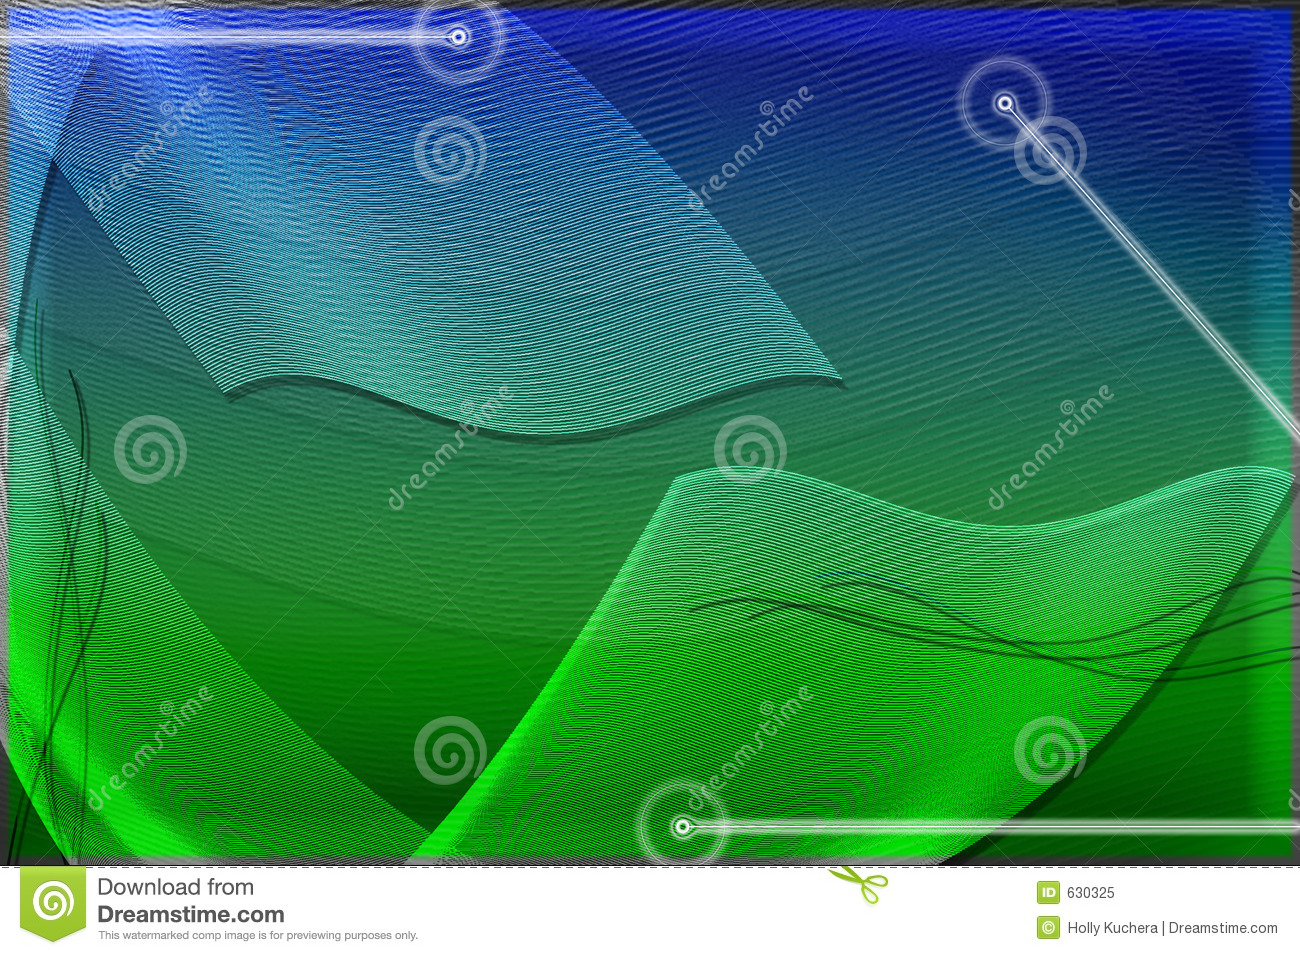 Royalty Free Stock Photo Under Sea Tech Wallpaper Image630325